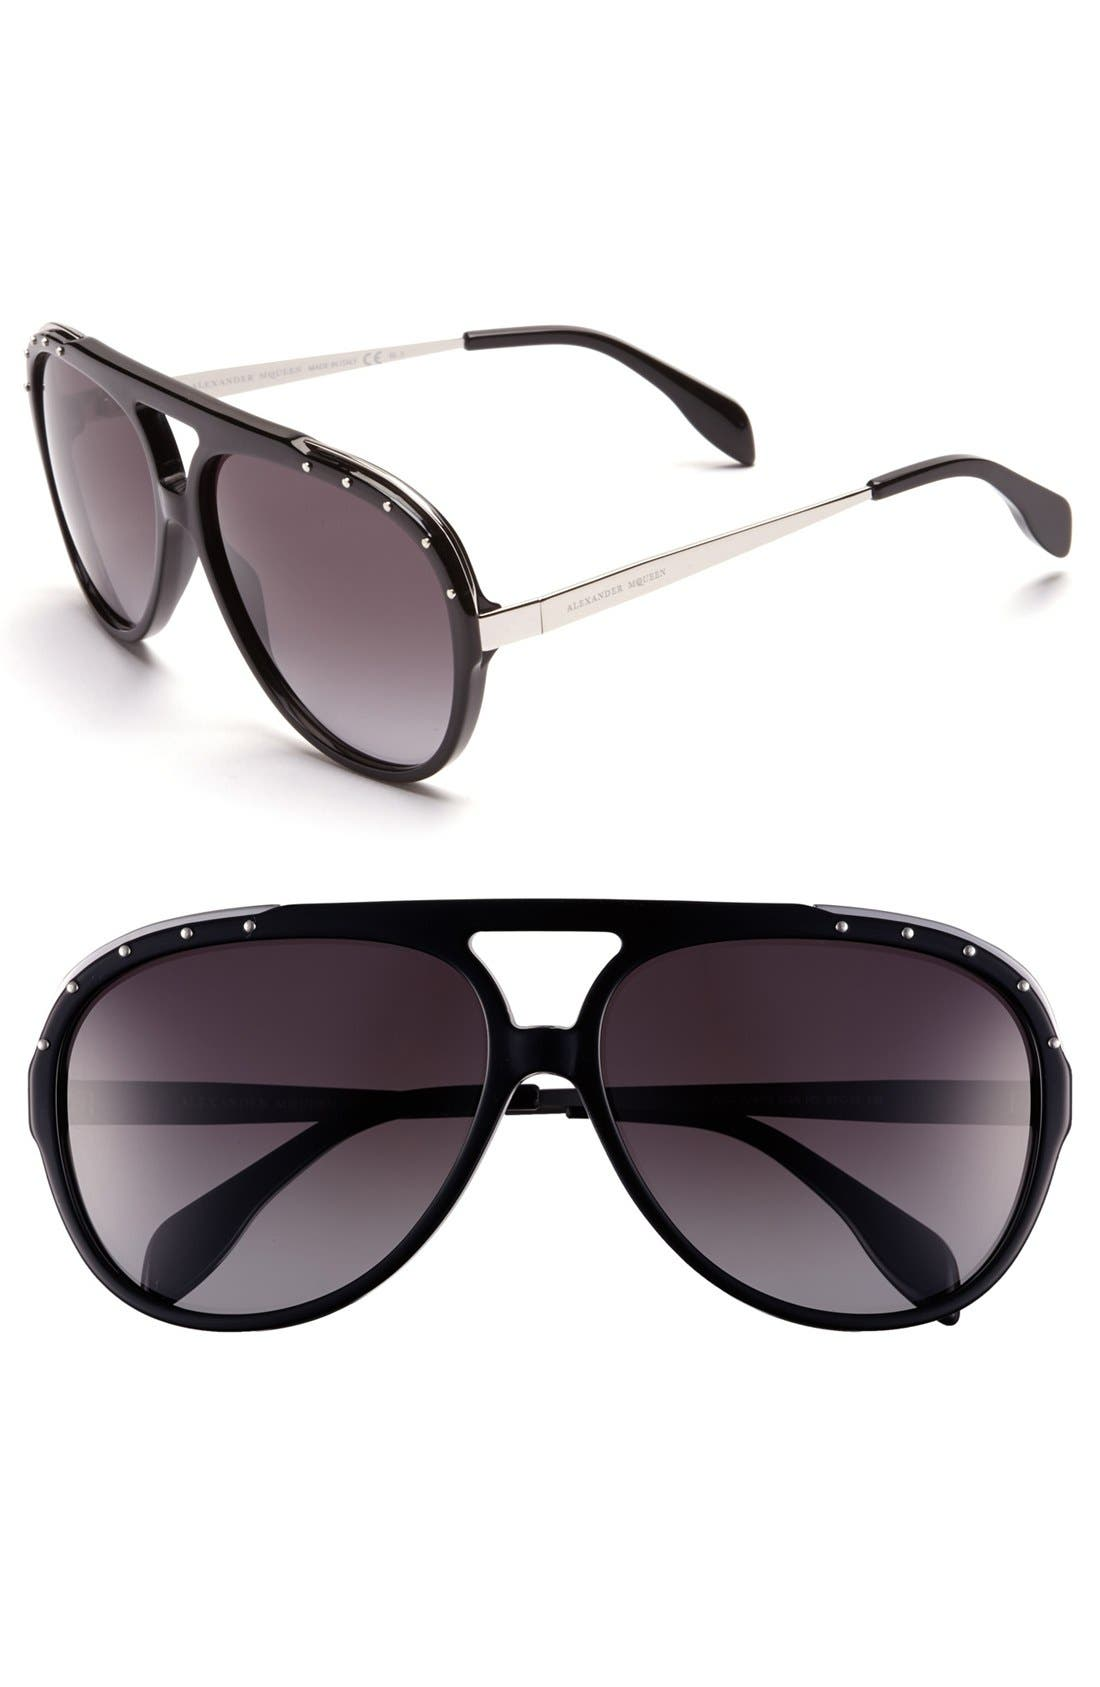 Main Image - Alexander McQueen 61mm Aviator Sunglasses